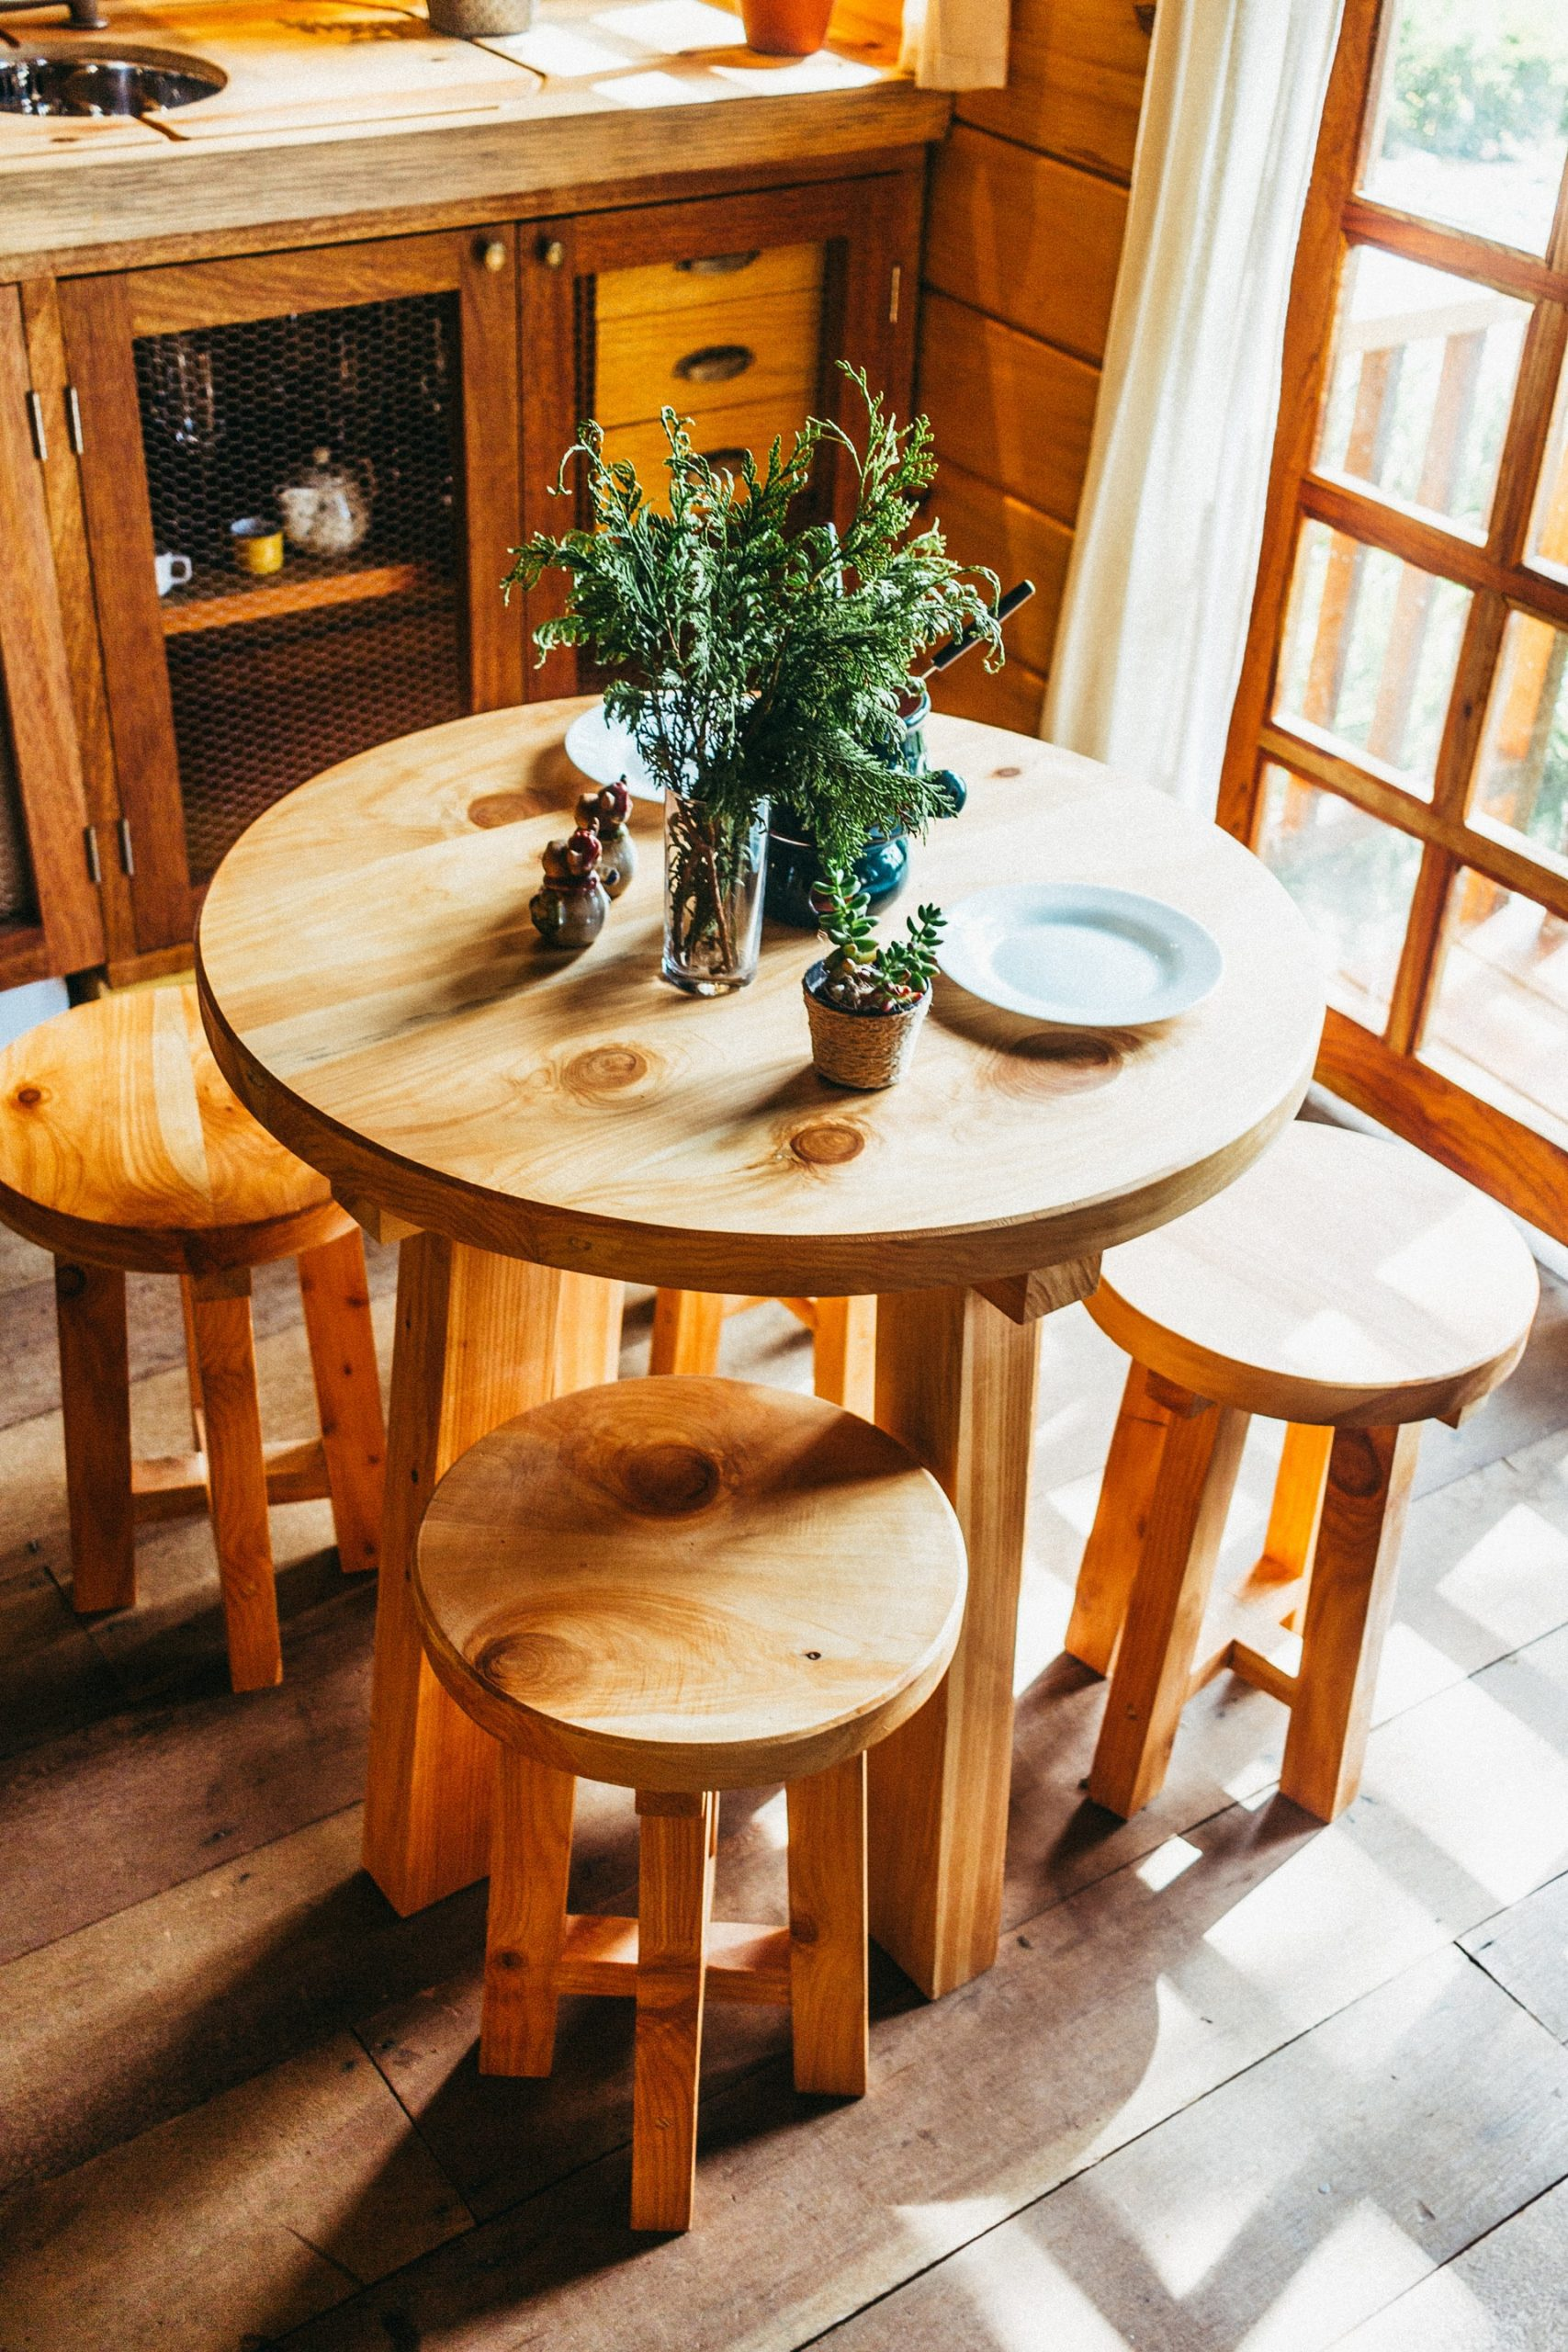 Wood Furniture Cleaning Do's and Don'ts According to the Pros